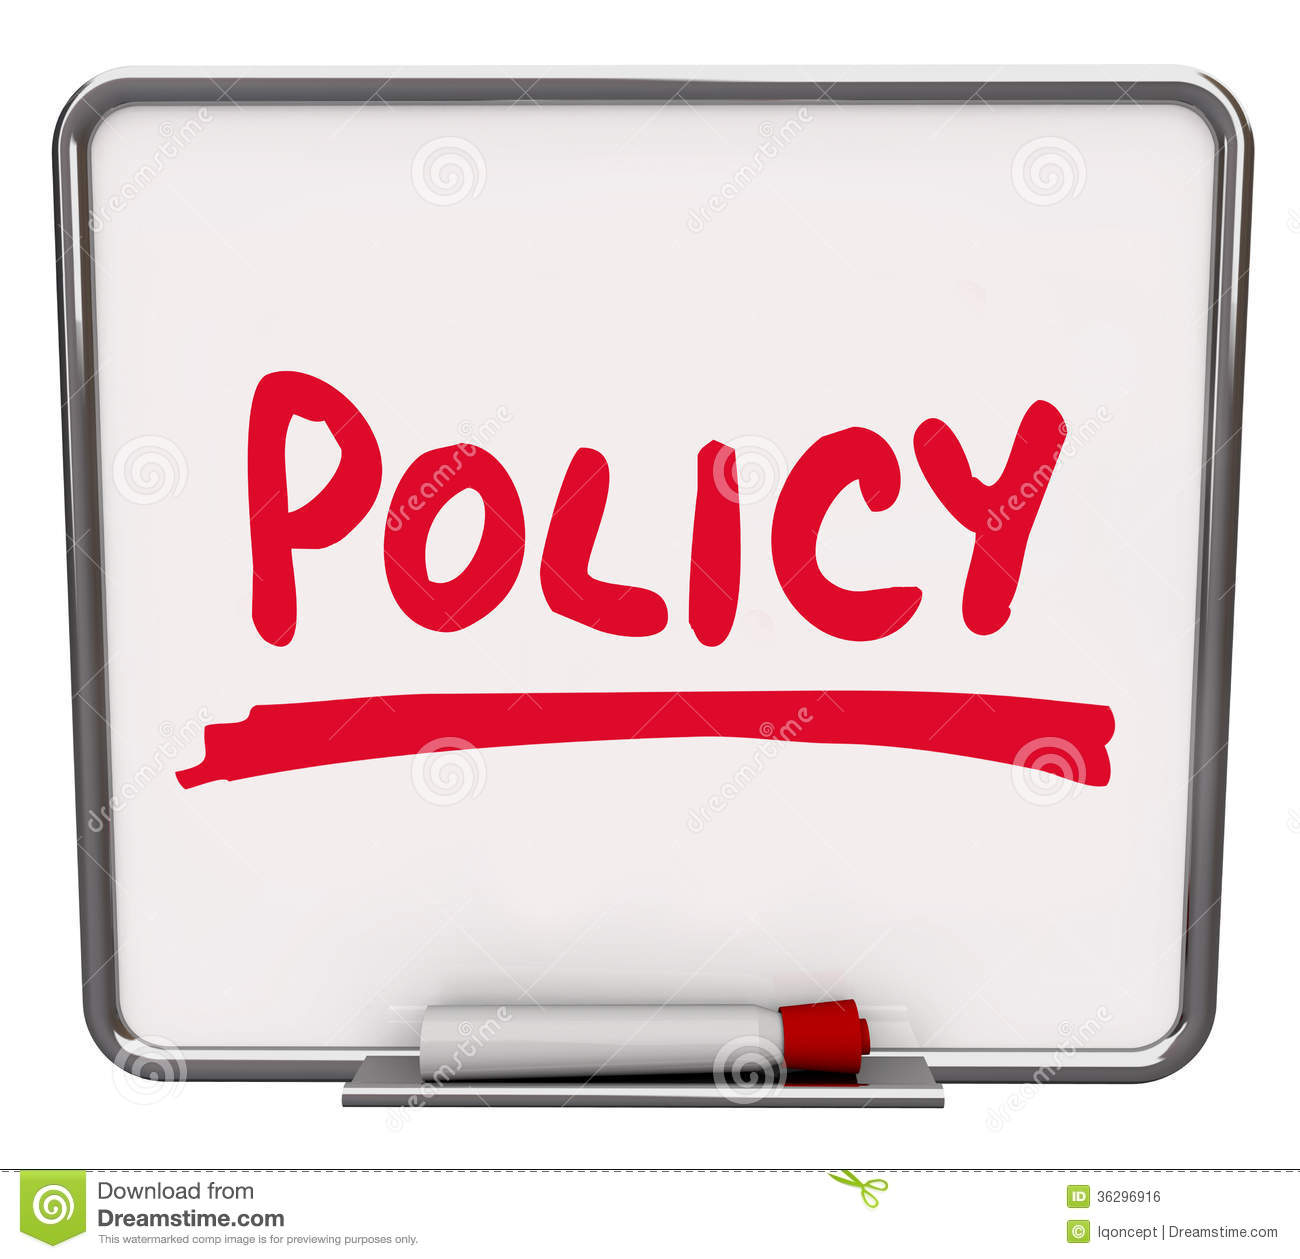 Policy Cliparts Free Download Clip Art.